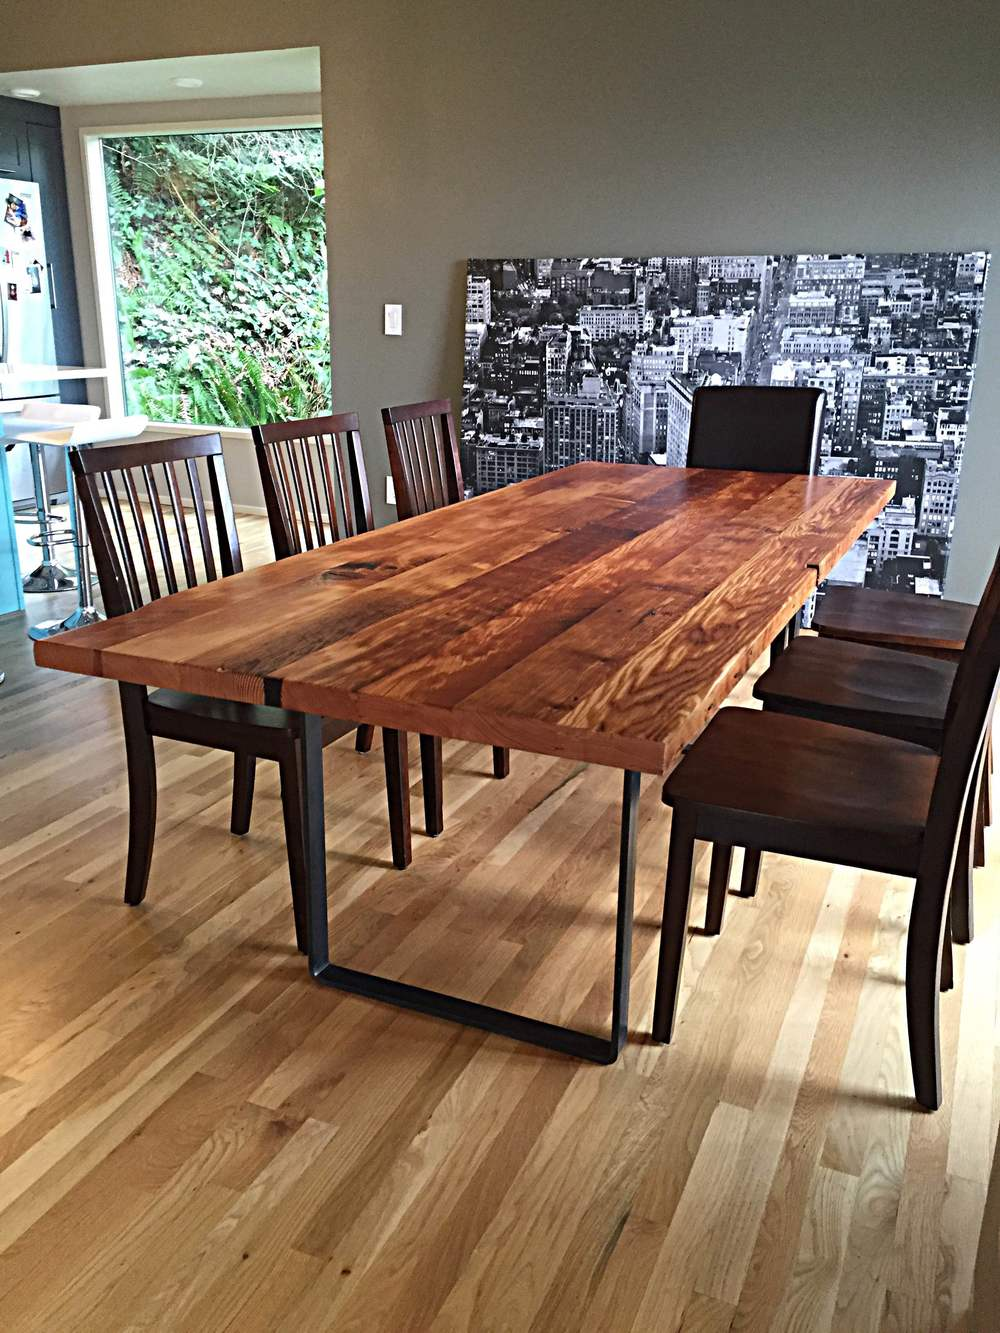 Stumptown Reclaimed | Reclaimed Wood Furniture